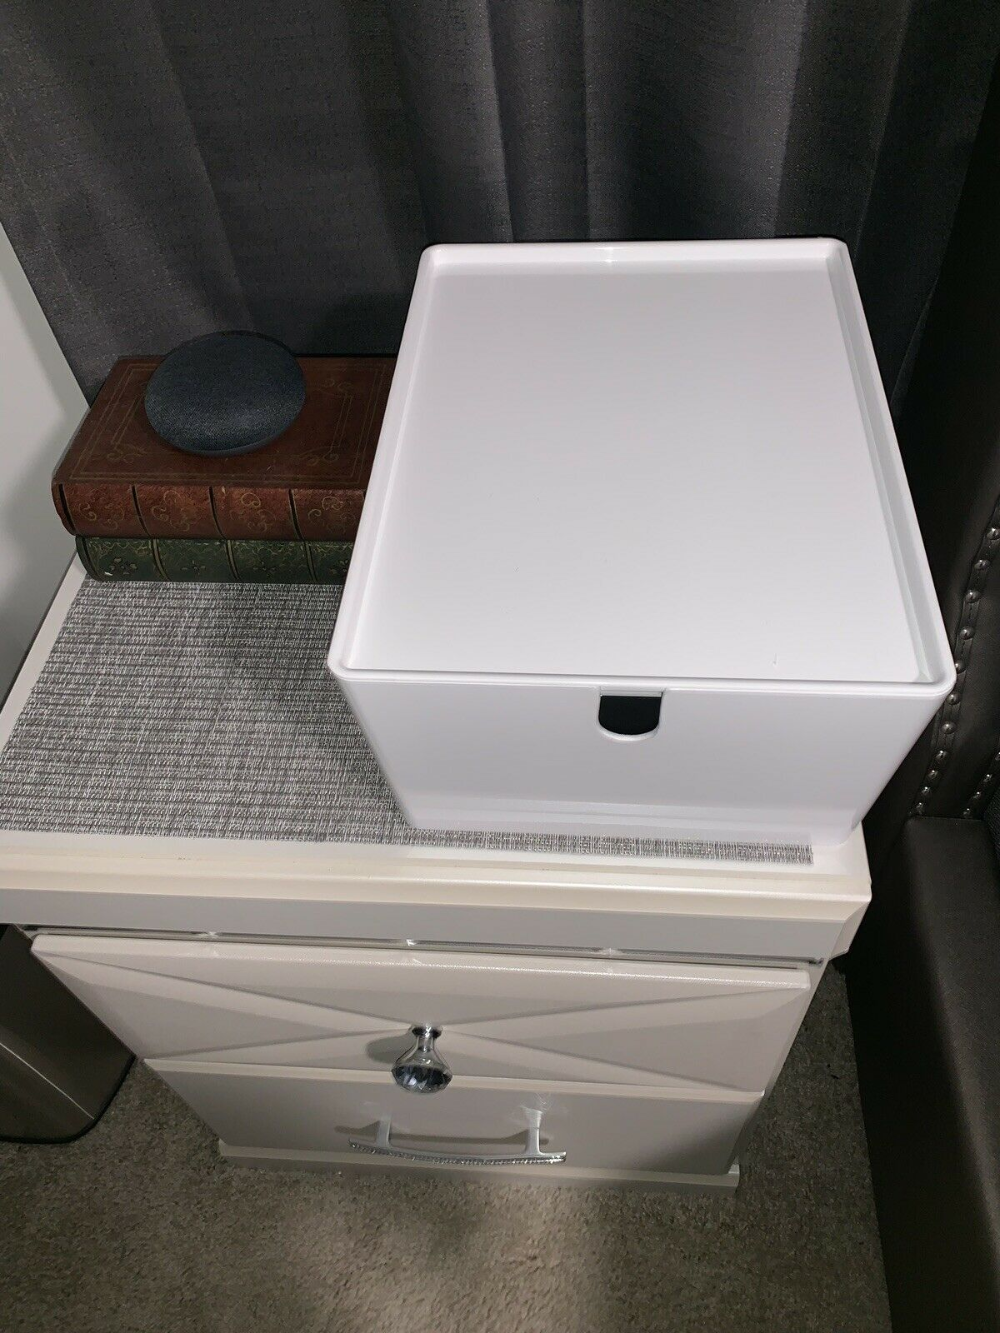 Cpap Bedside Table: Pin On Cpa